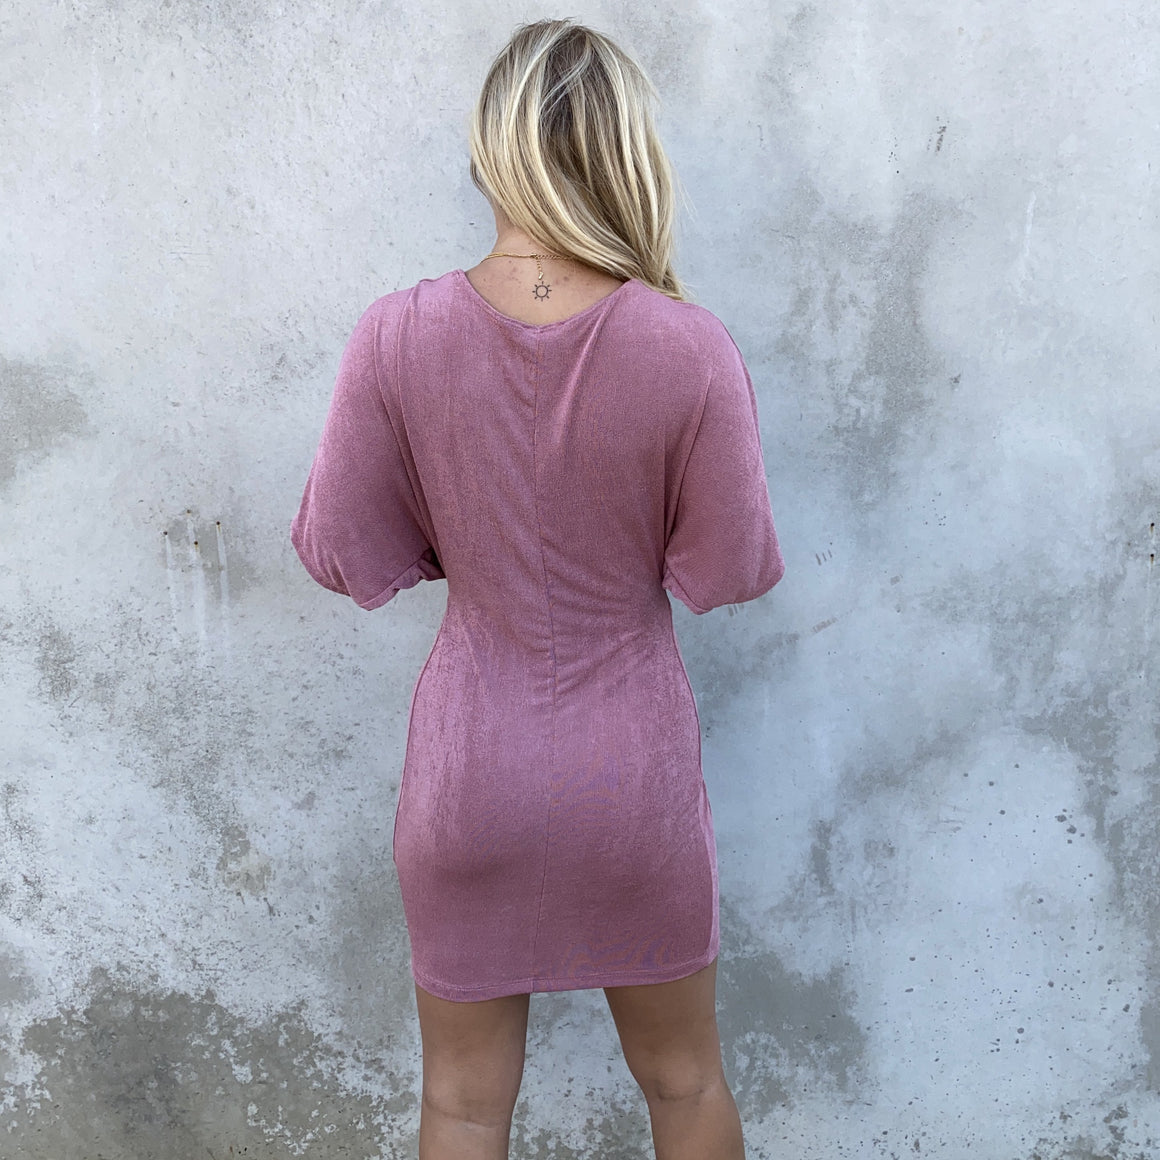 Royal Bodycon Dress in Mauve